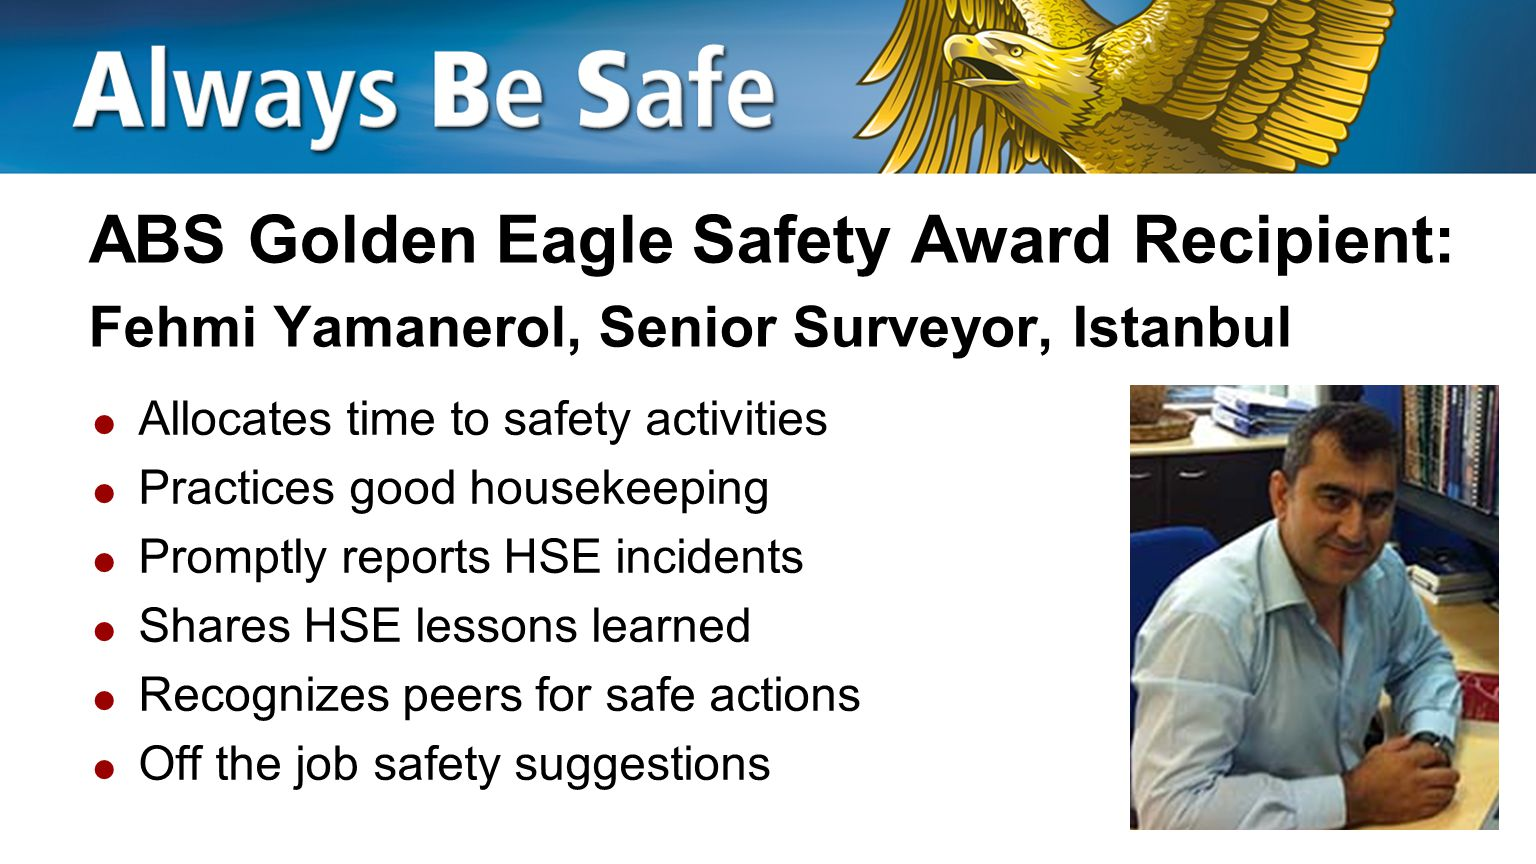 ABS Golden Eagle Safety Award Recipient: Petri Rantanen, Principal Surveyor, Turku  Leads safety education in Finland and in other countries in the Europe Northern Region  Leads safety meetings  Off the job safety suggestions